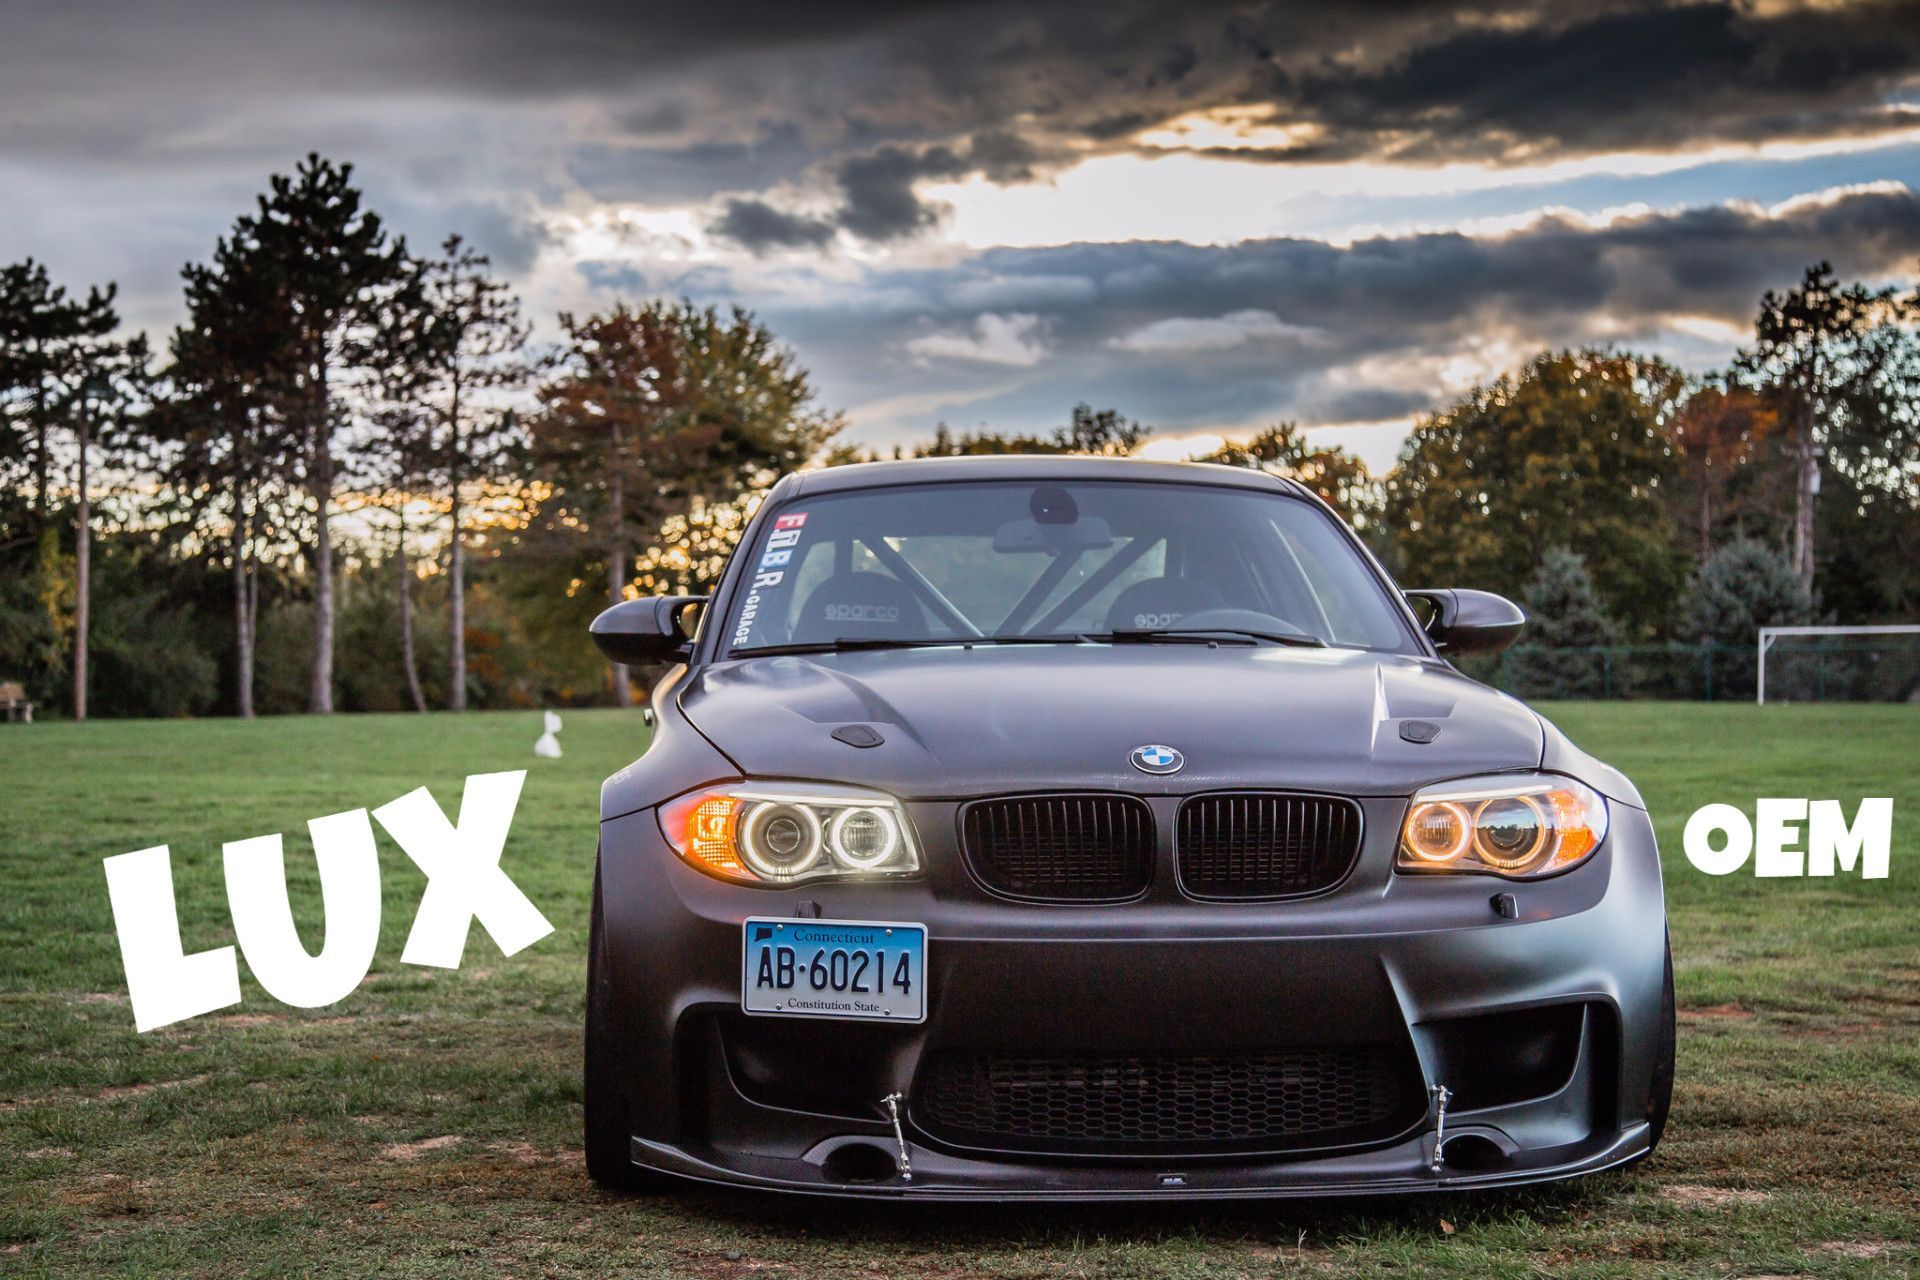 Lux Bmw H8 V5 Color Adjustable Angel Eyes E82, E60, E70-4225